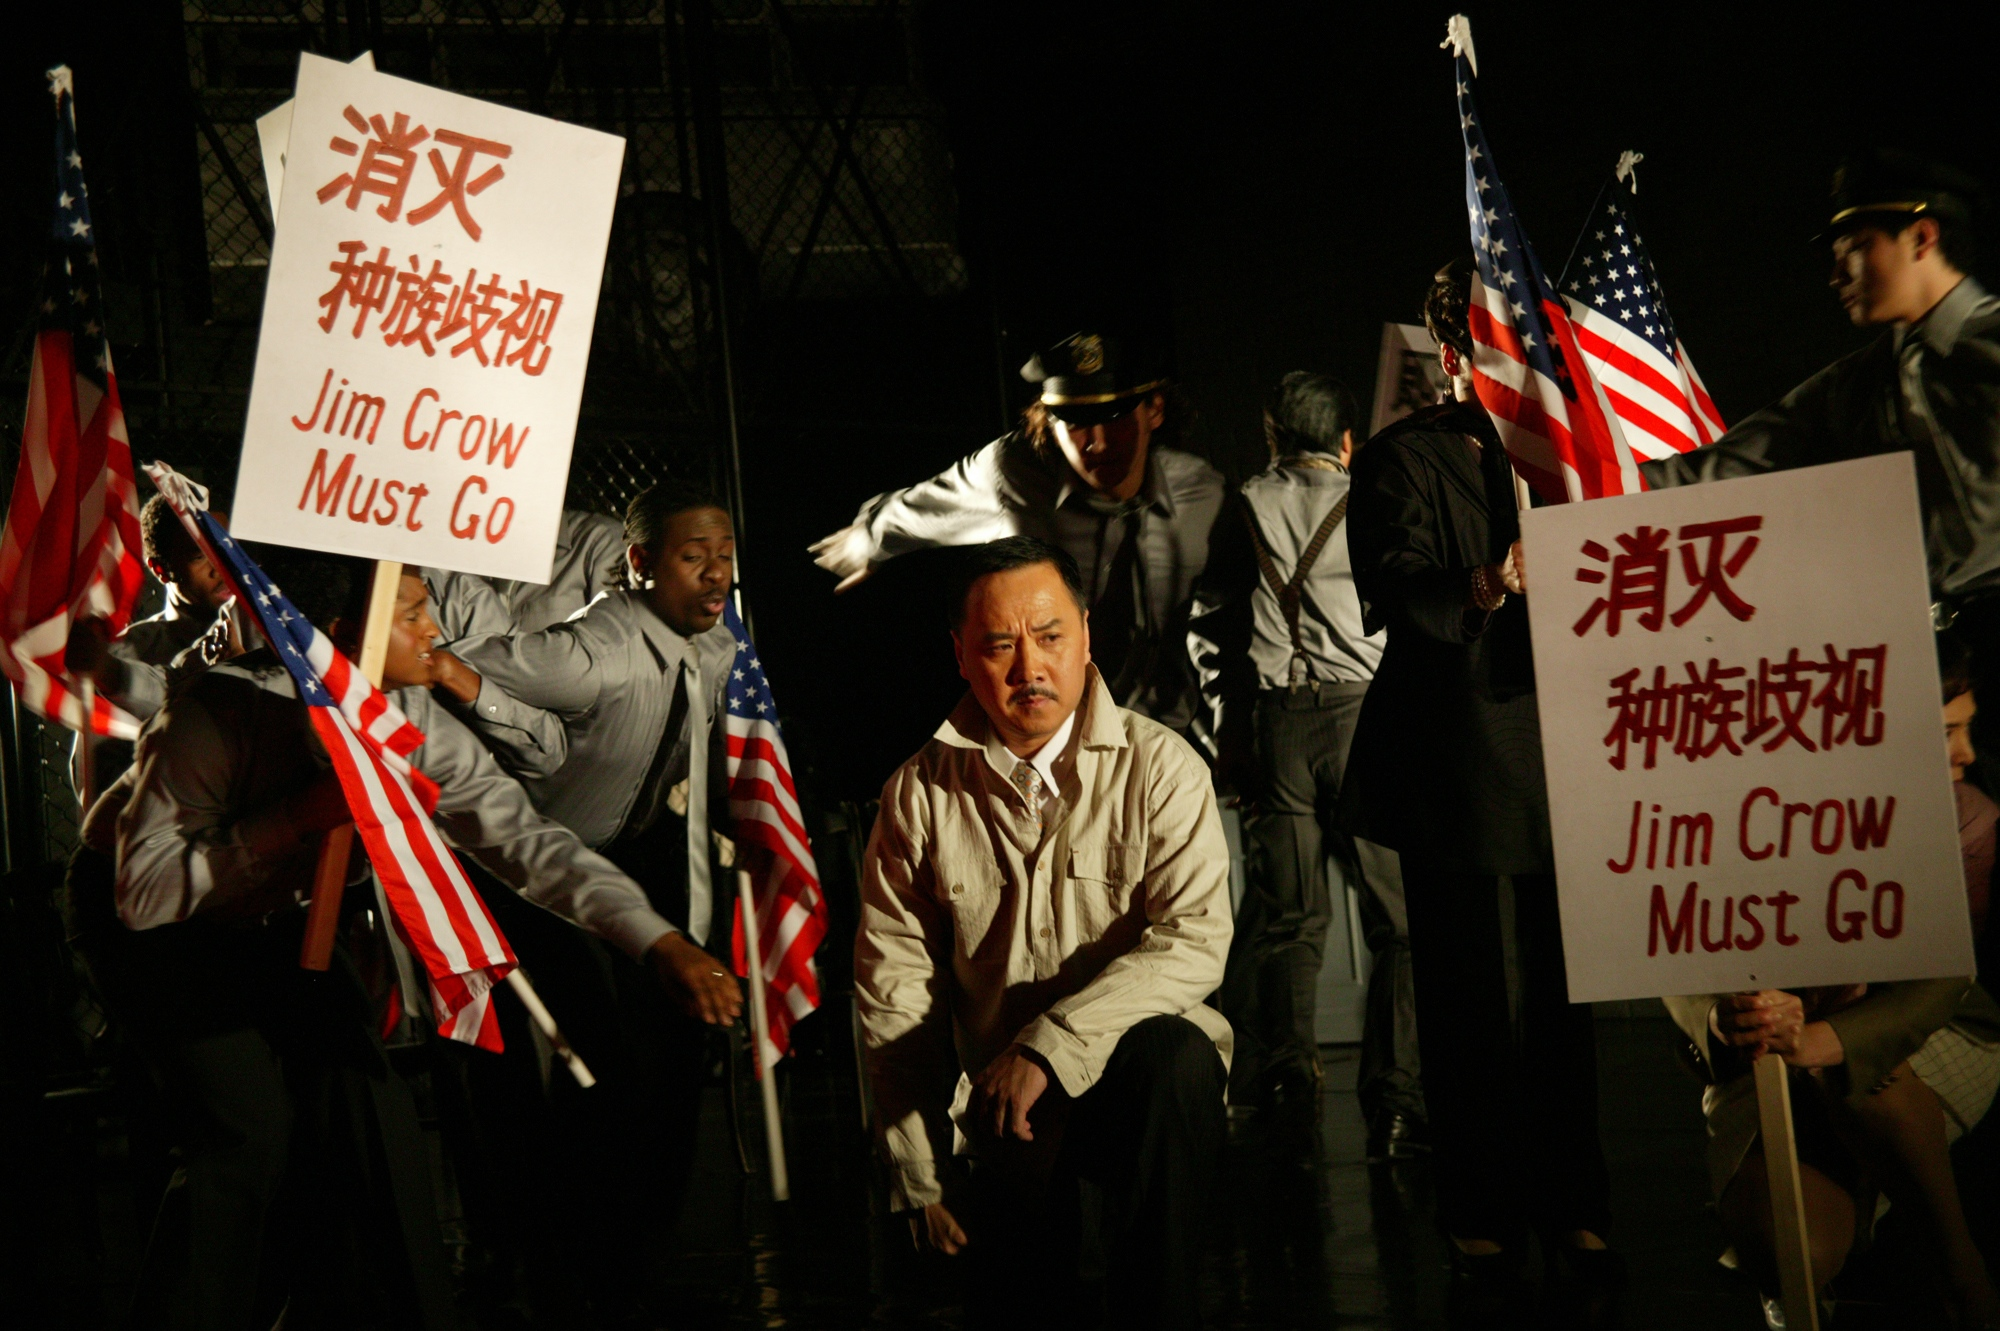 Bringing-King-to-China-film-still-Cops_Bust_MLK200-photo-by-Kevin-McKiernan